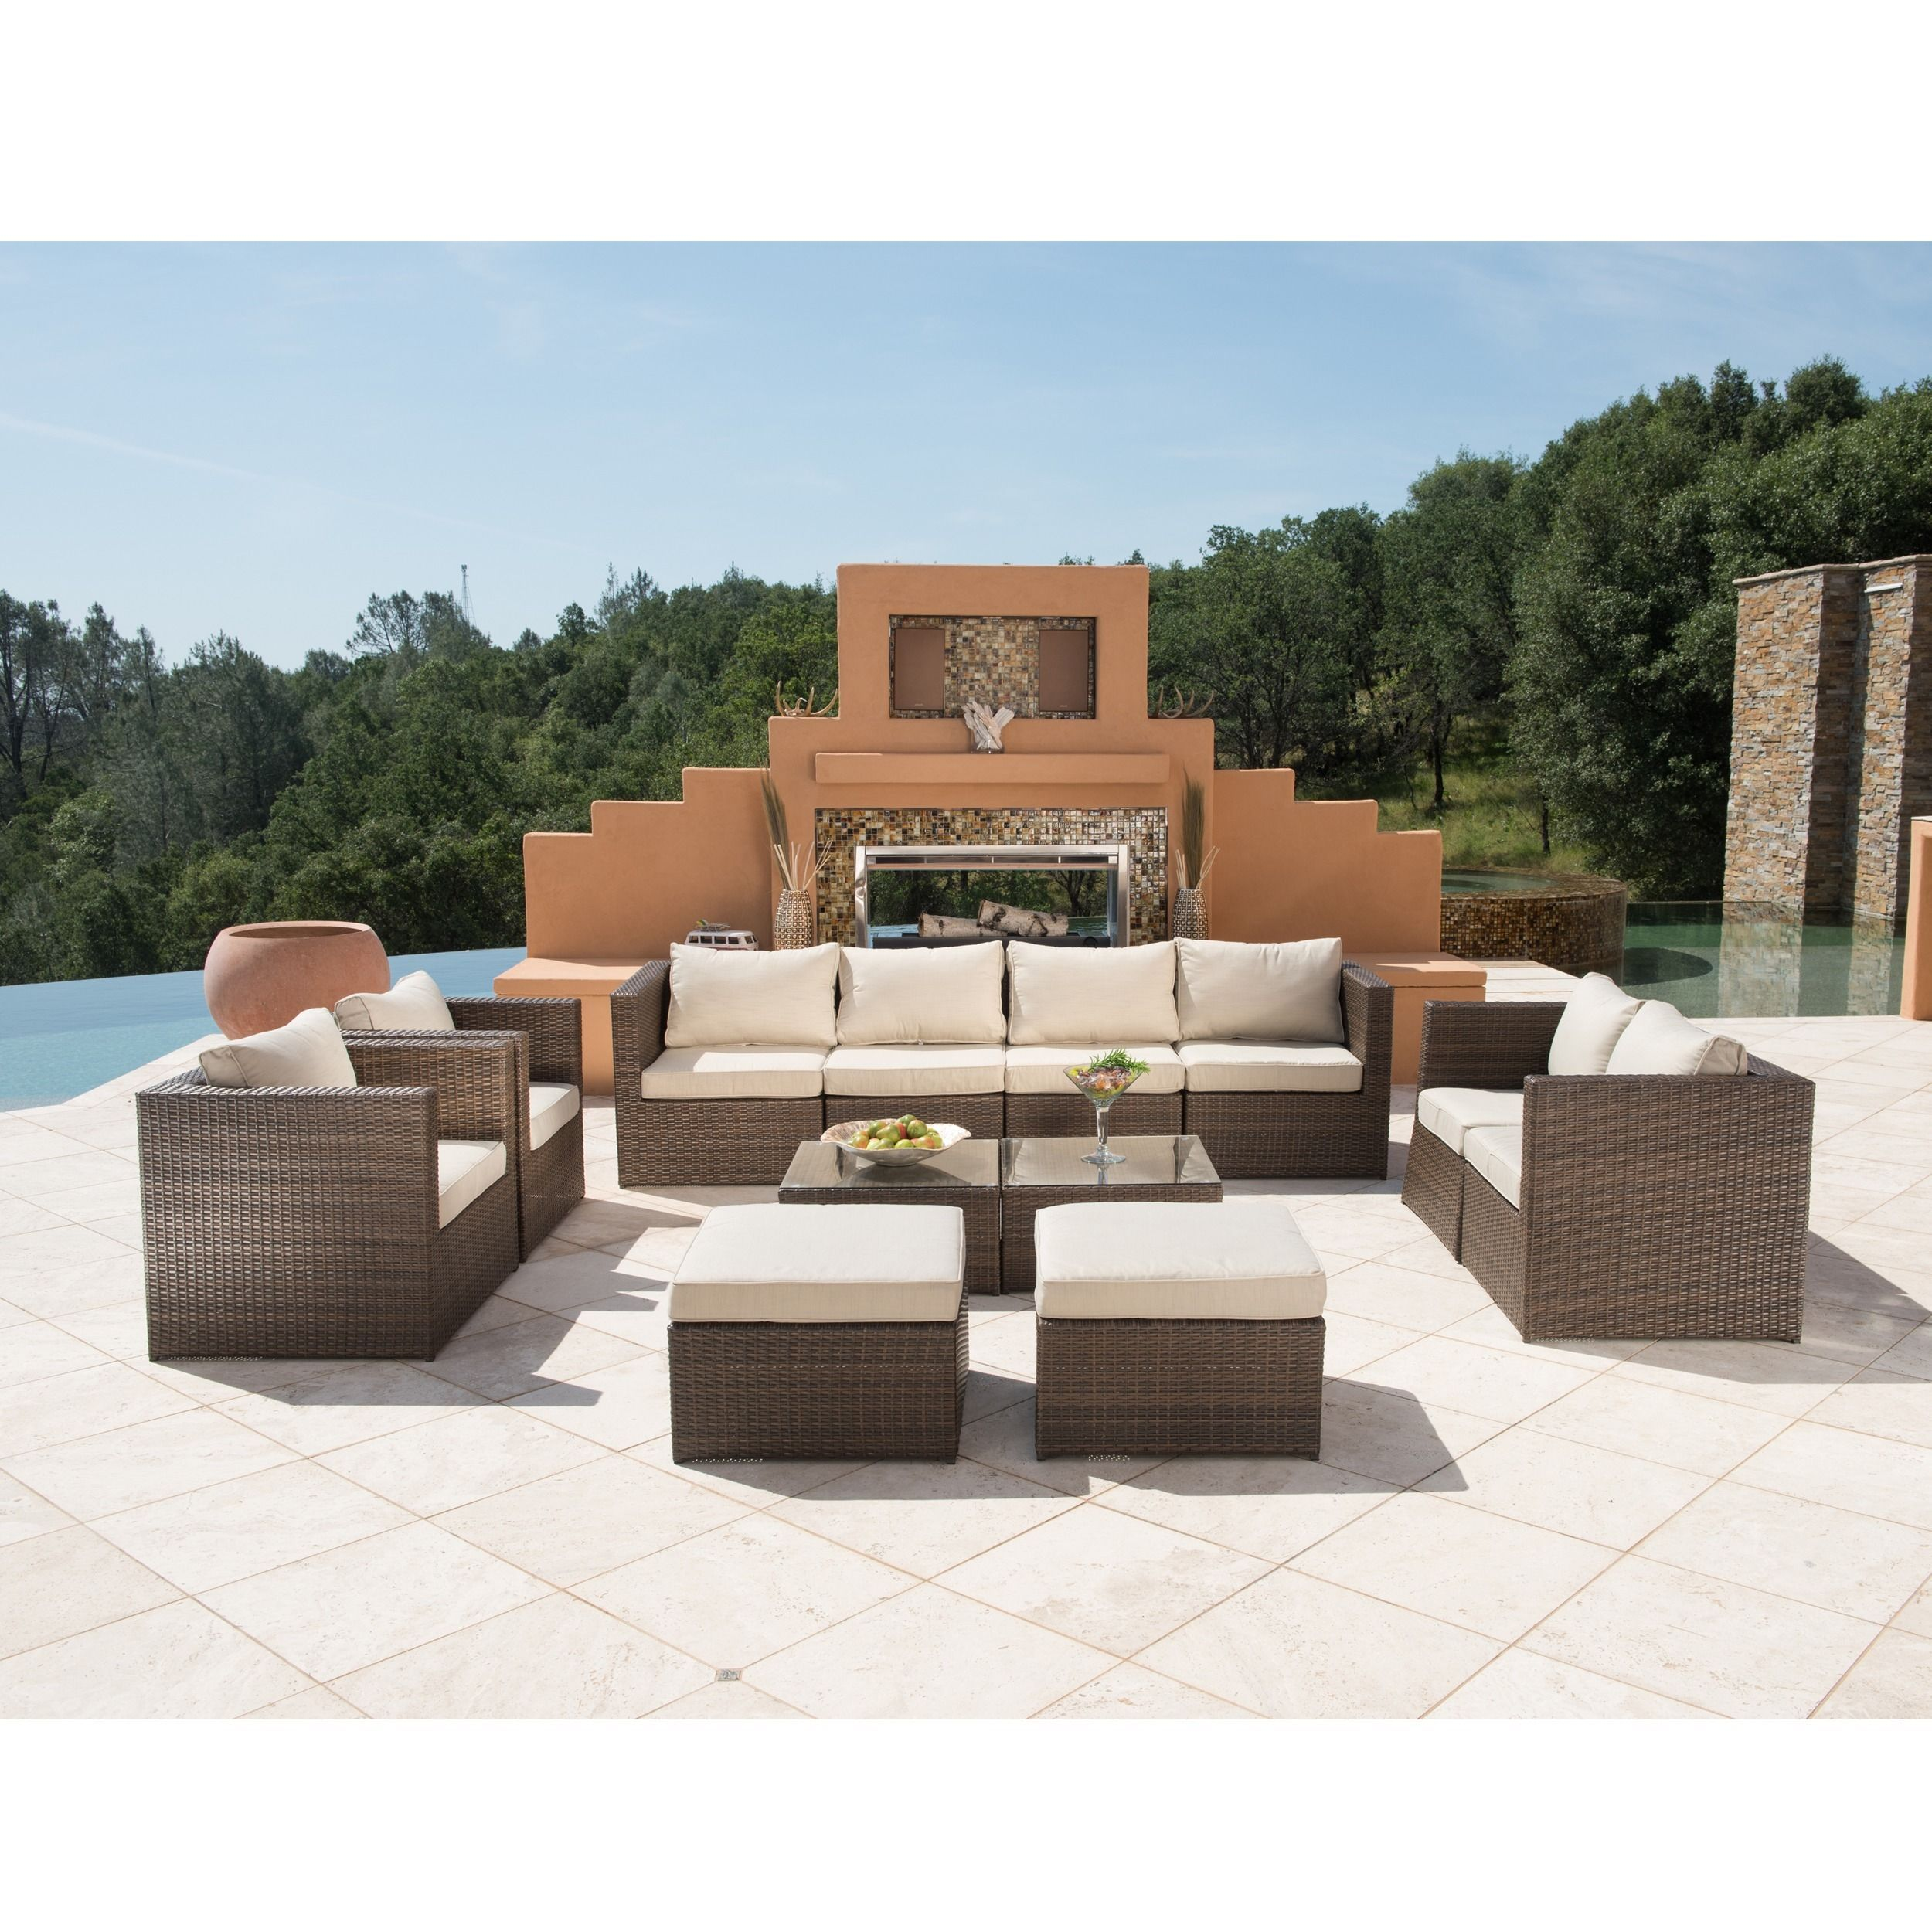 Corvus Trey Outdoor 12 Piece Brown Wicker Furniture Set With Glass Top  (MS082R1), Beige, Size 12 Piece Sets, Patio Furniture